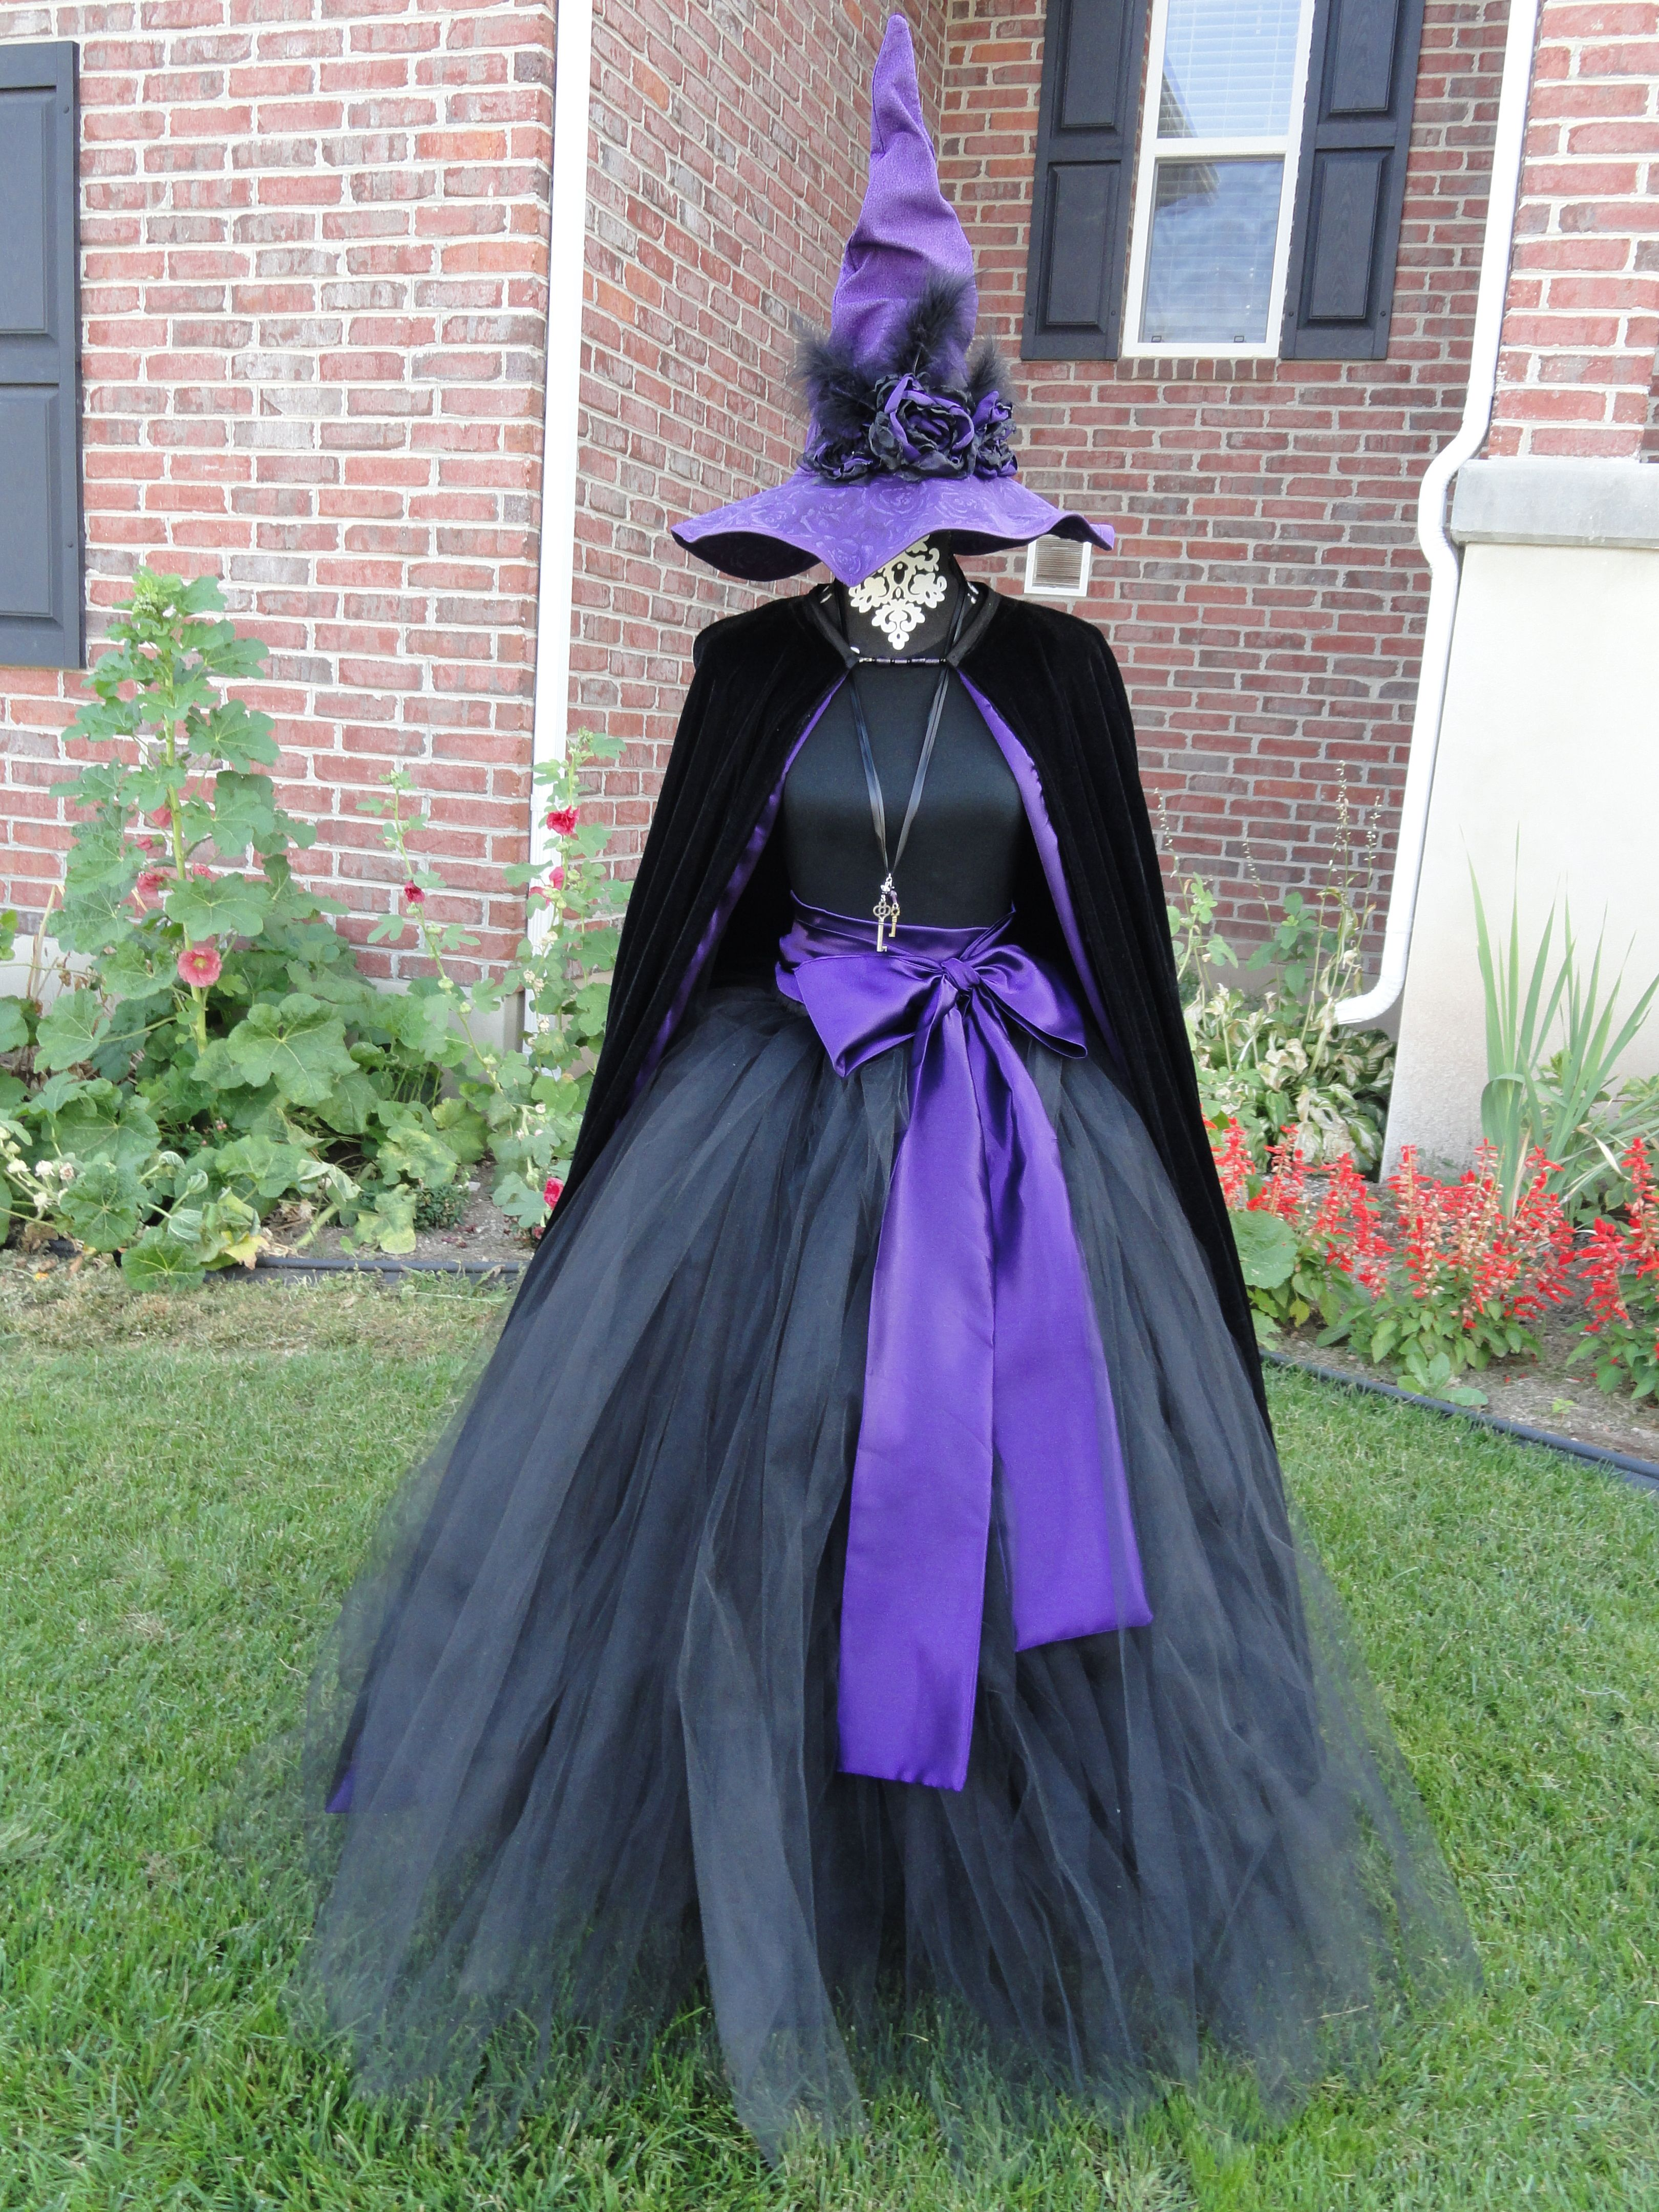 A Witch has gotta have style! Tulle gown, velvet cloak